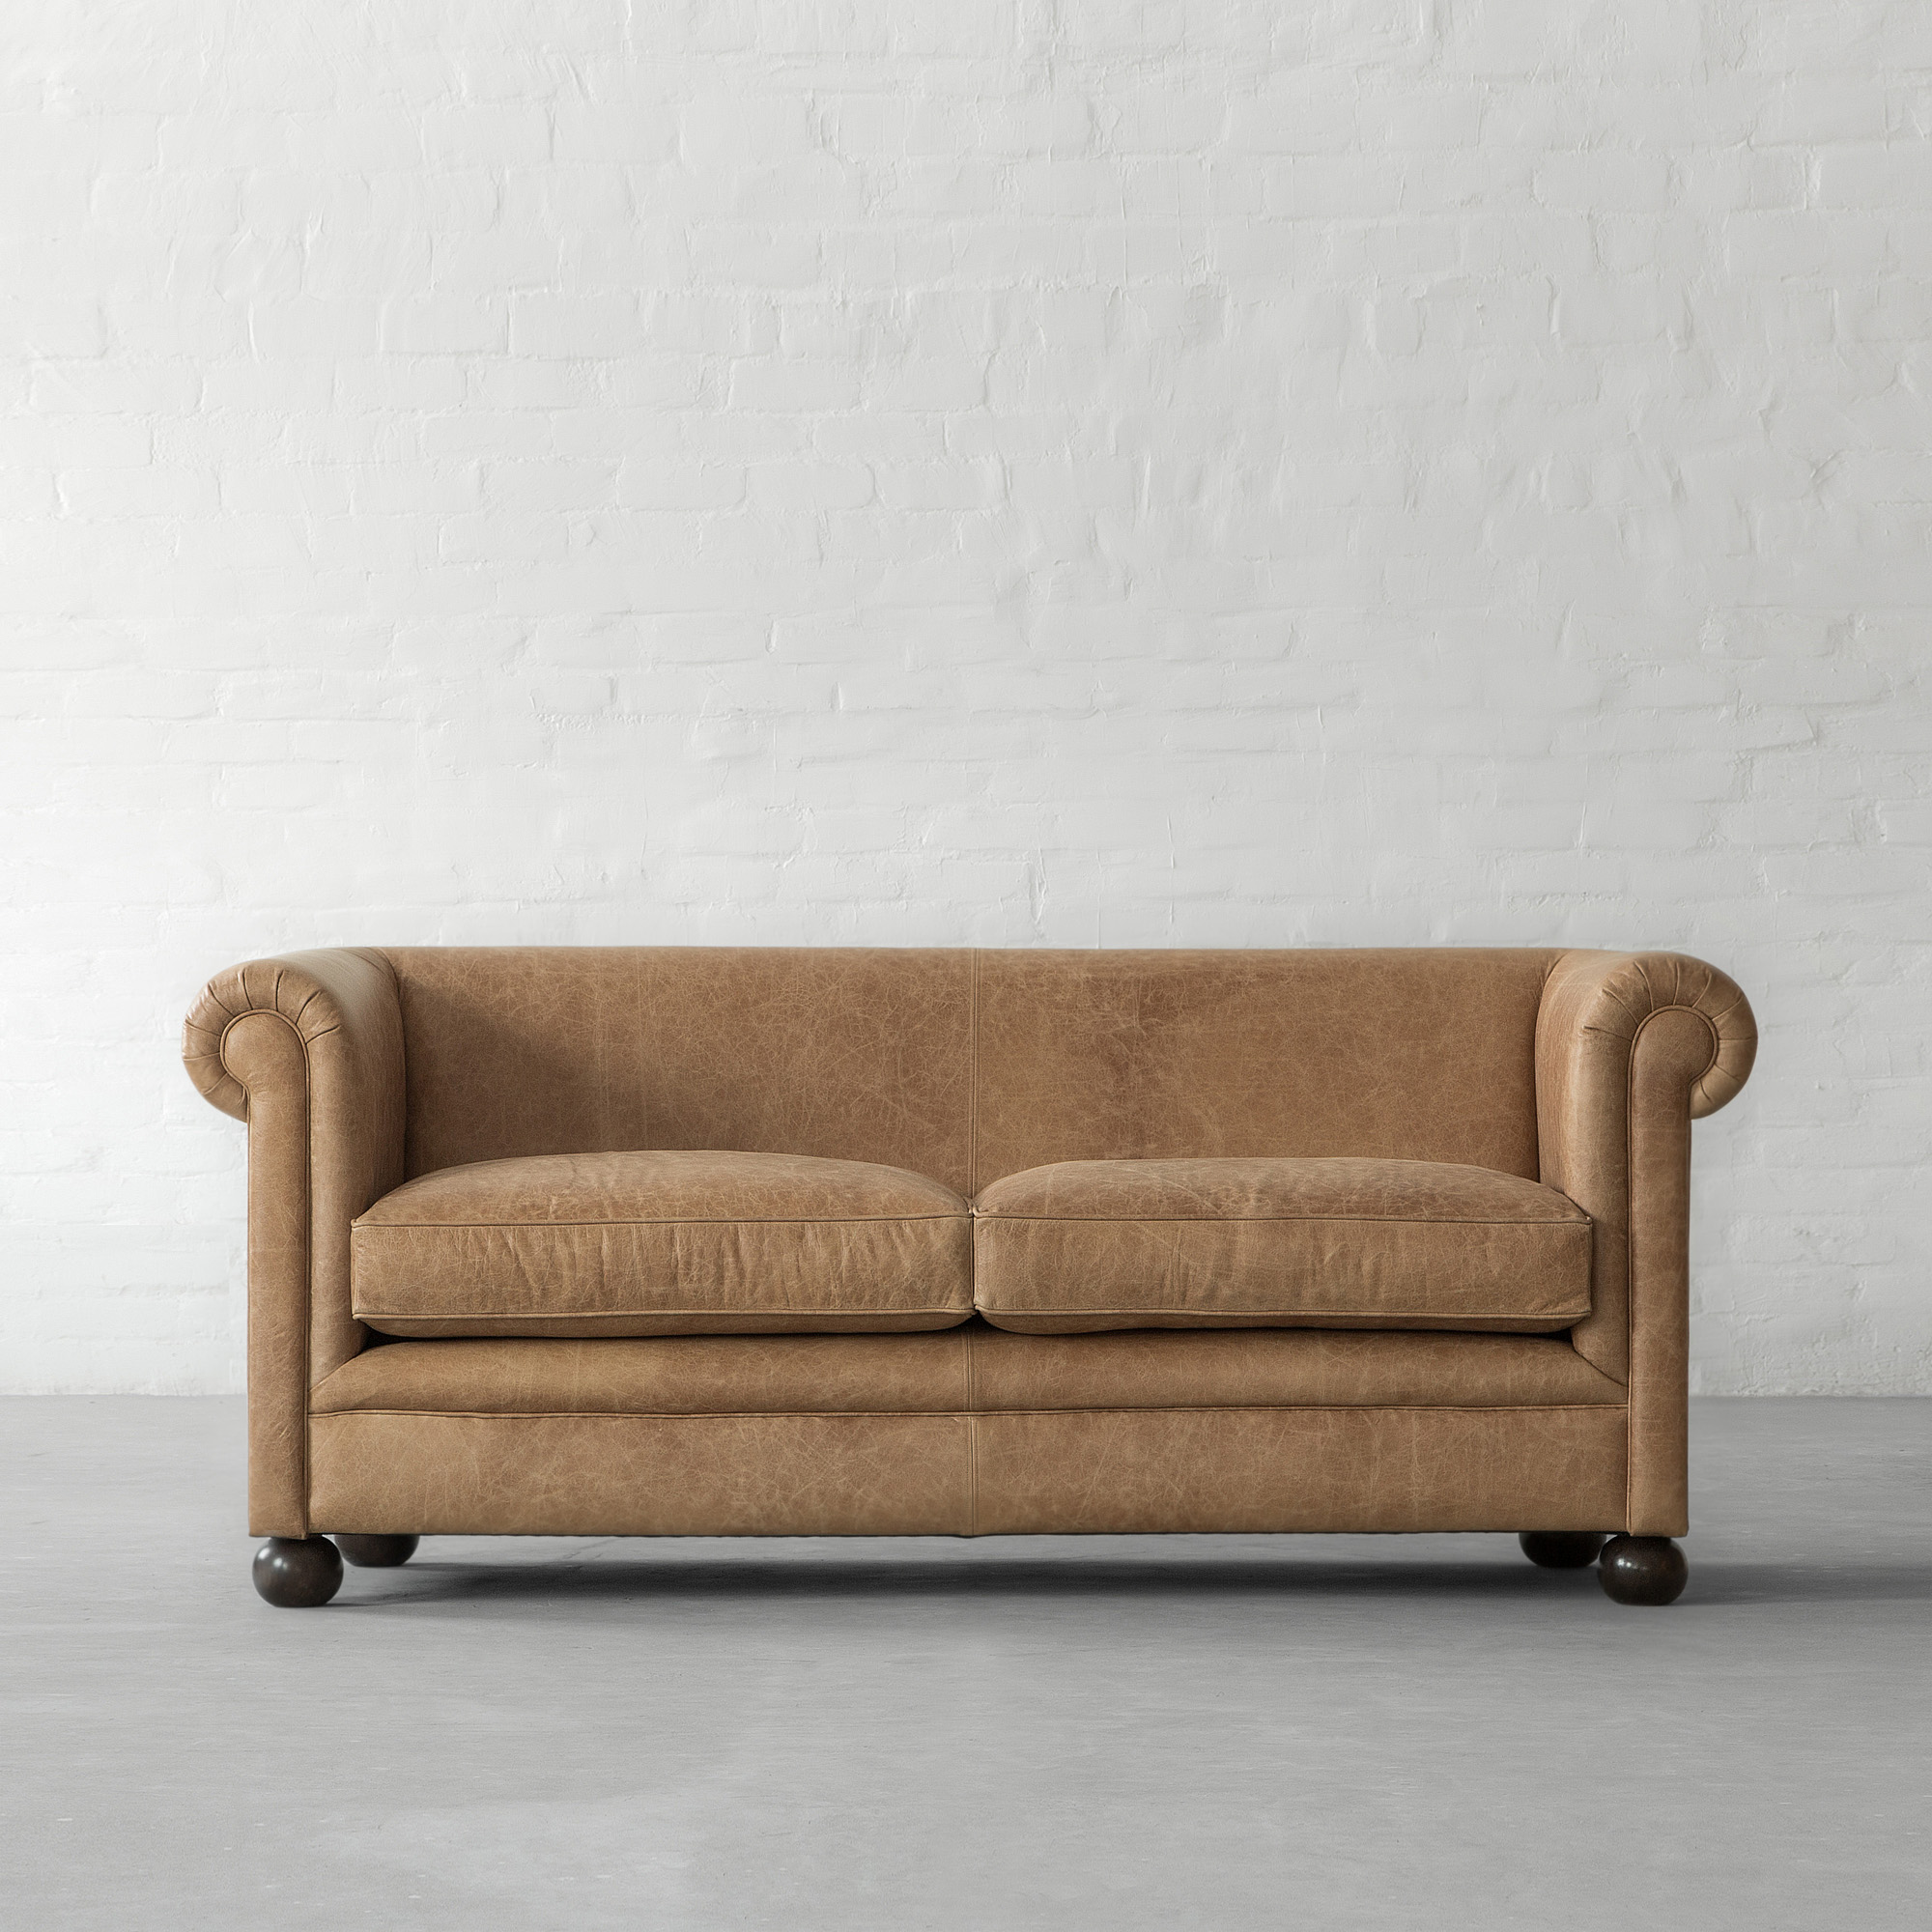 Kamin Hark Hanau Kare Chesterfield Oxford Sofa